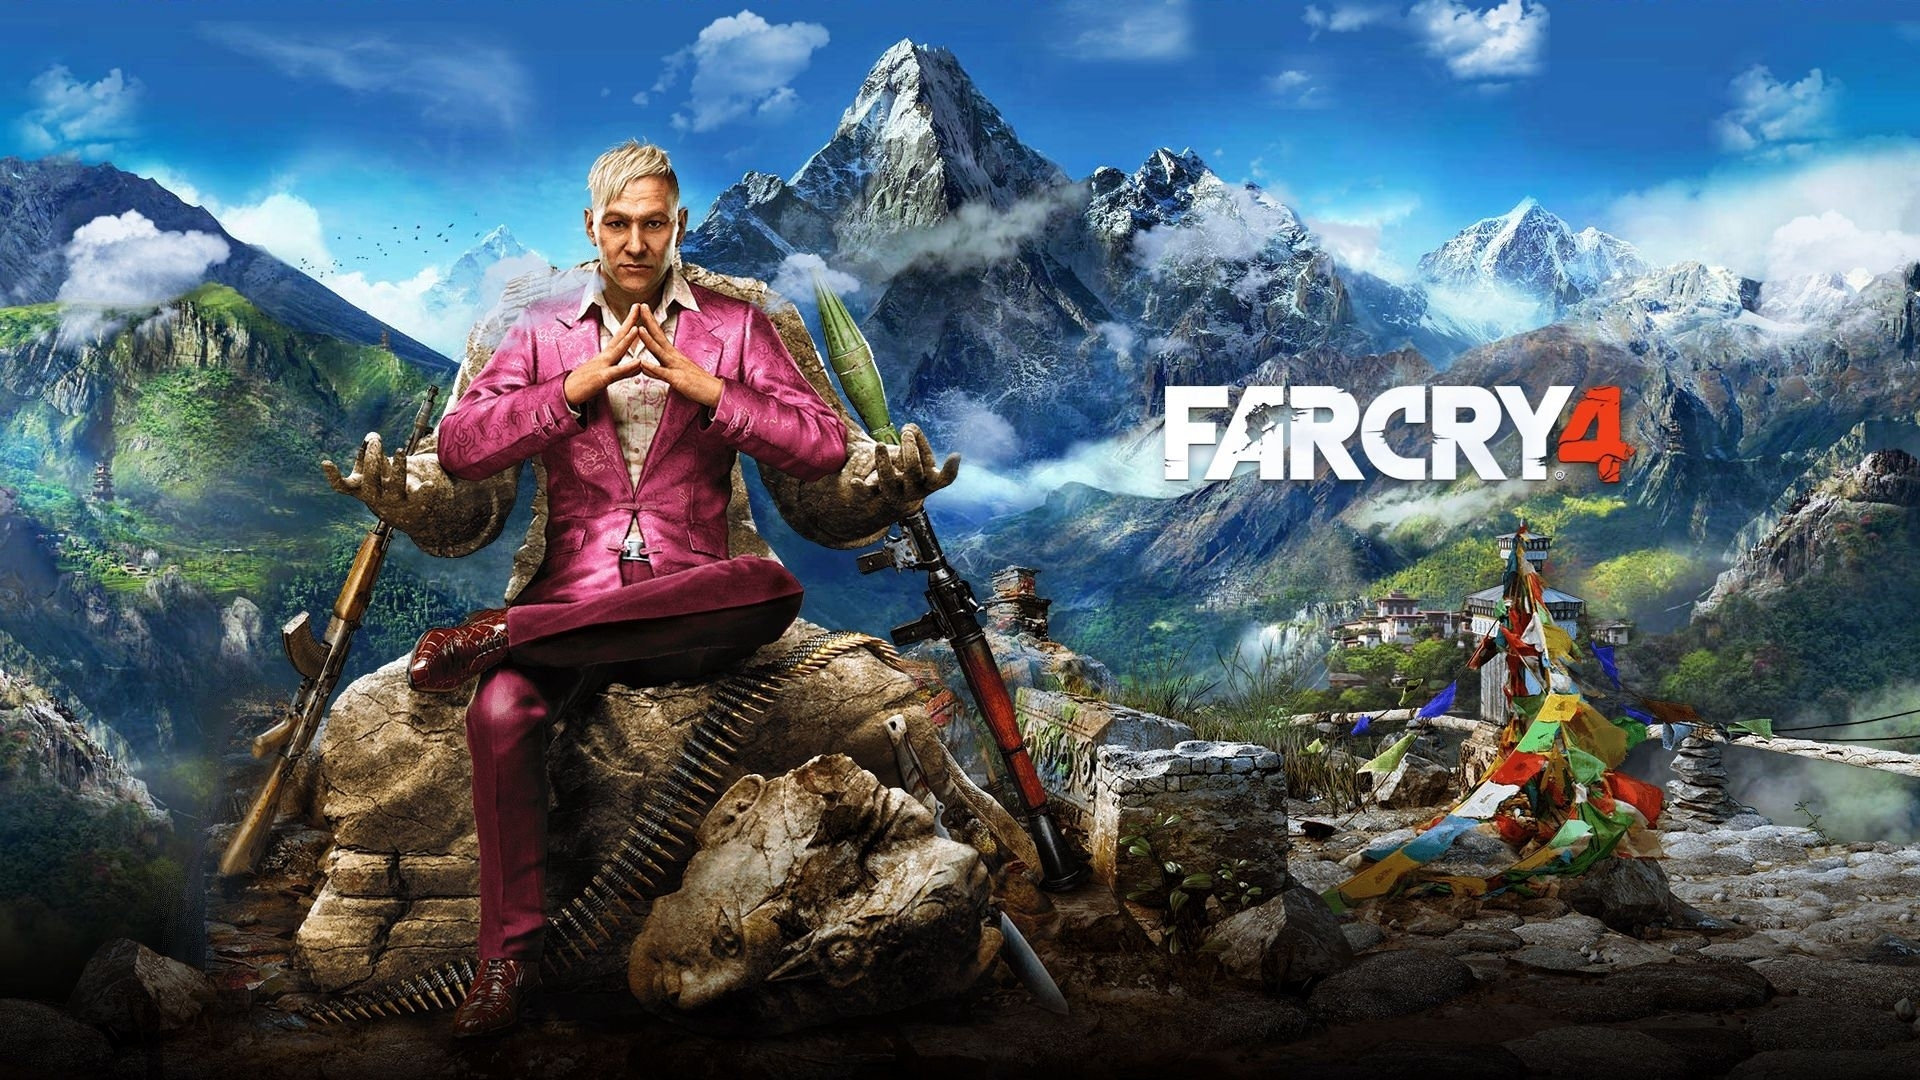 far cry 4 telecharger | telecharger jeux